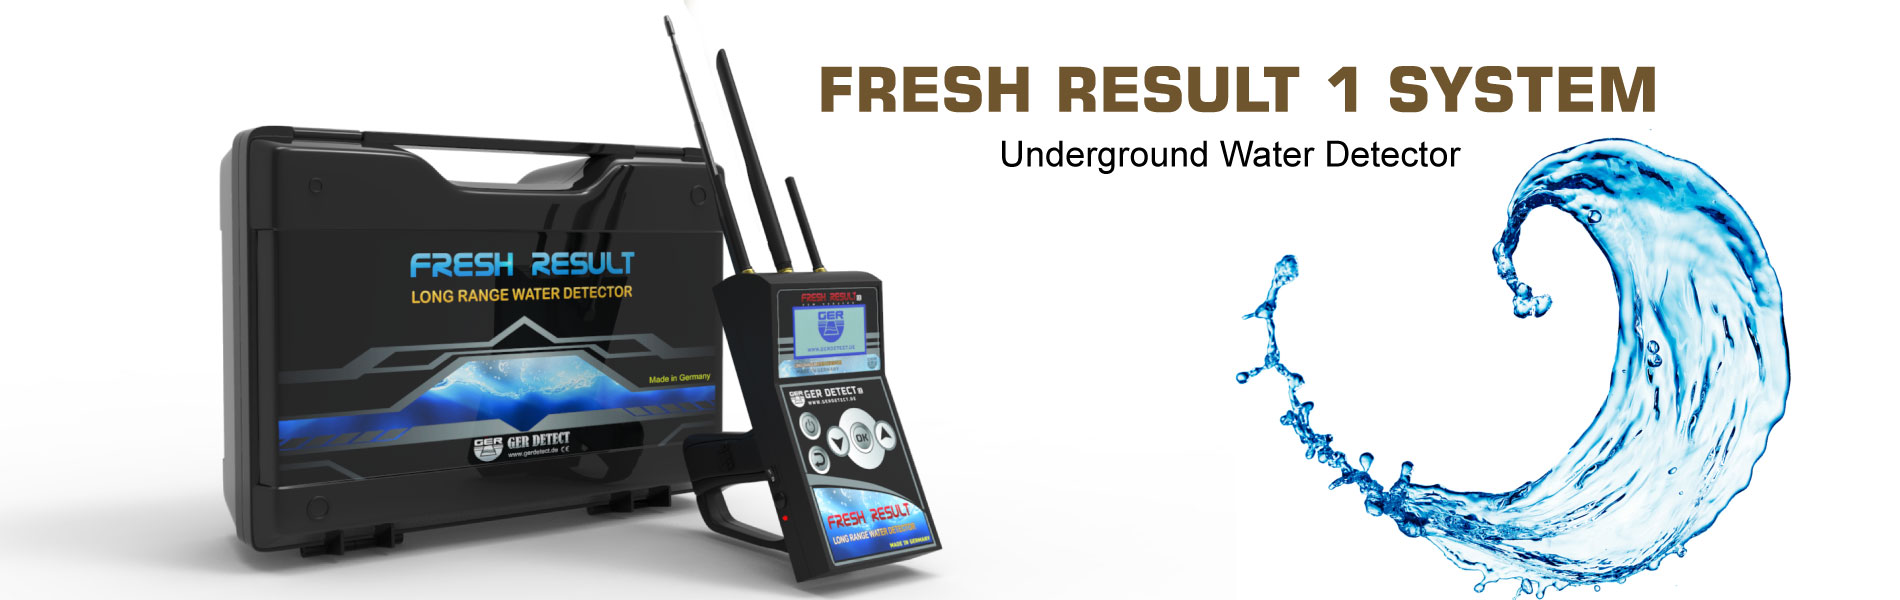 fresh result device searching underground water